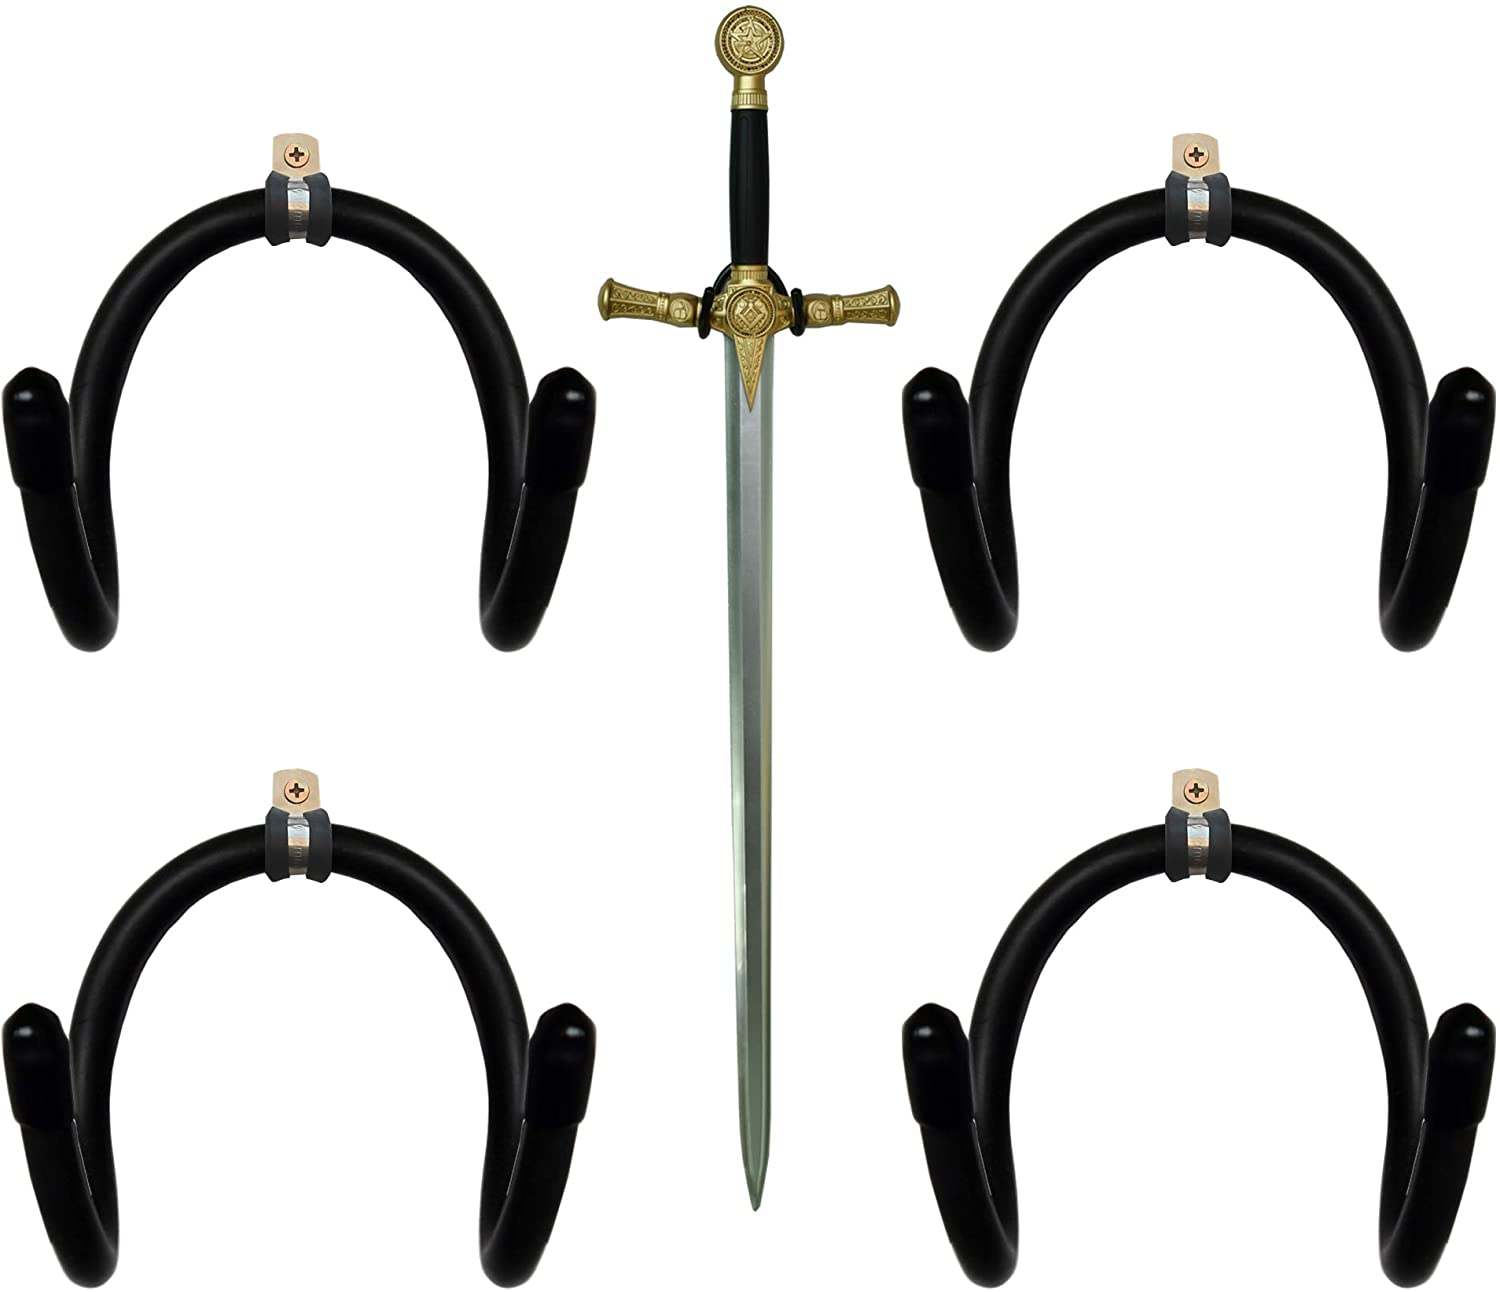 YYST Mini Adjustable Sword, Wall Hook Display Hanger Wall Mount for Sword,Dagger,Axe,Keyblade, etc-4/PK- No Sword-Vertical Display